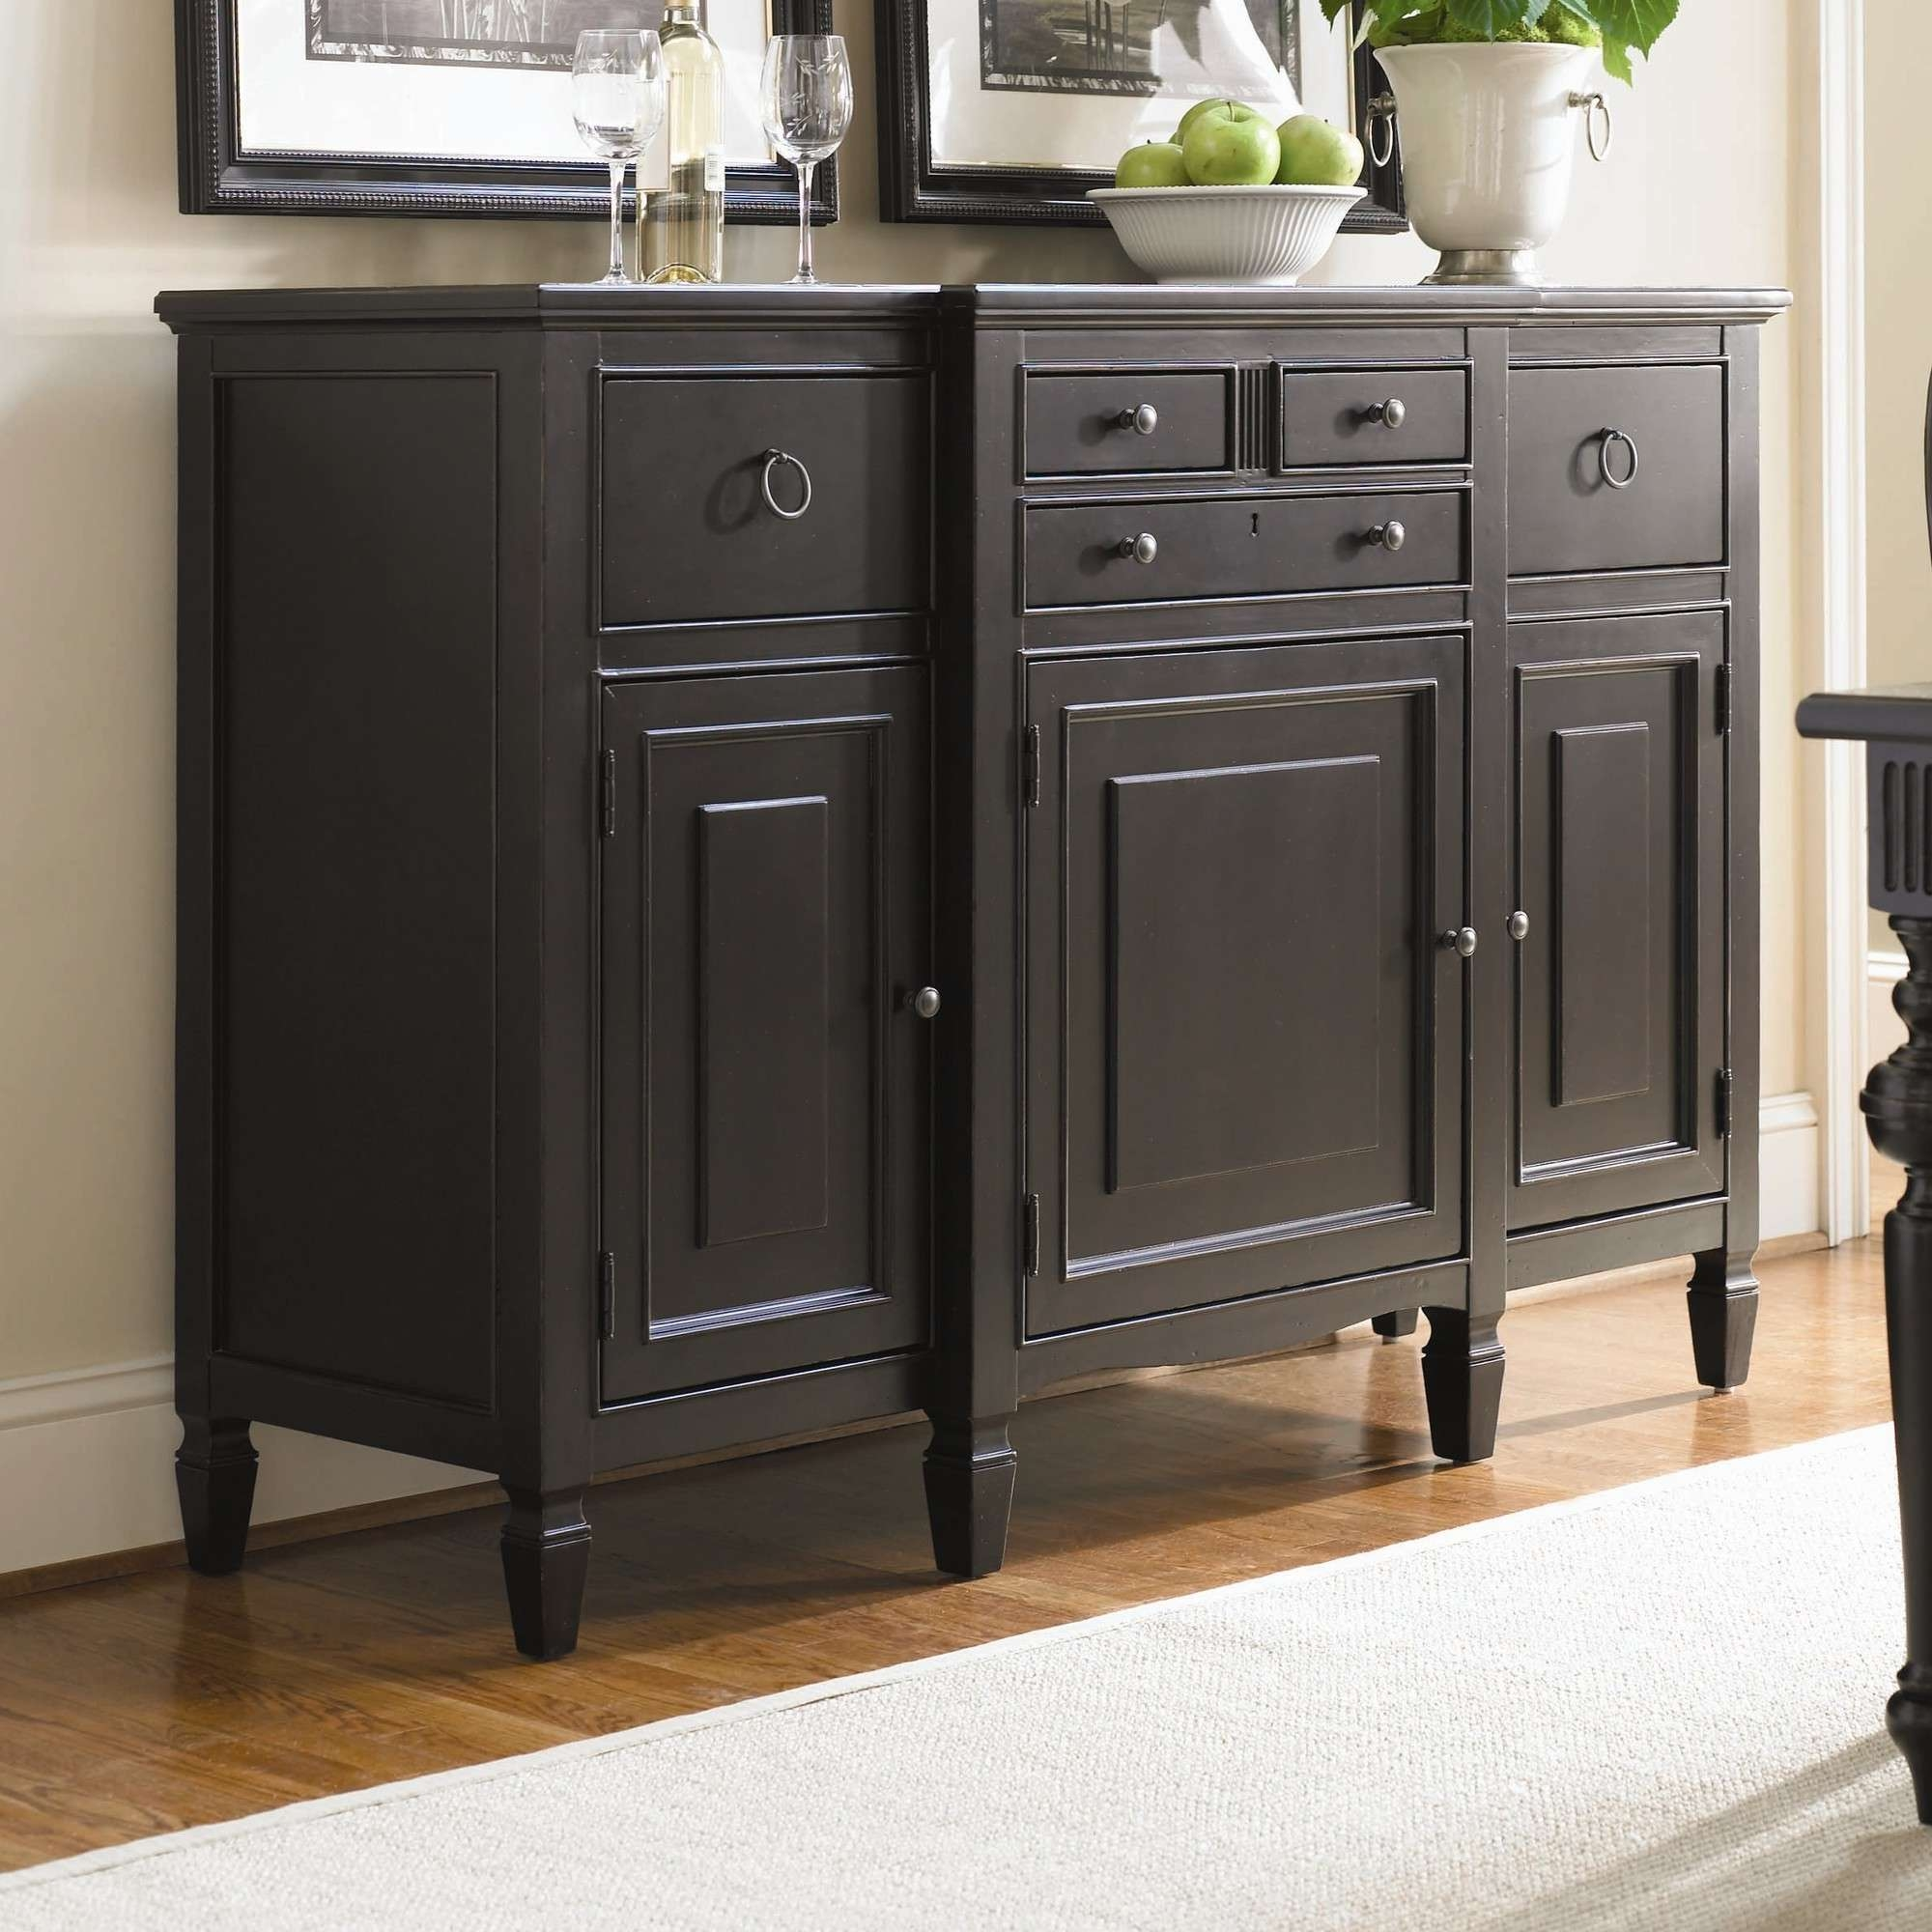 Beautiful Sideboard Buffet Furniture – Bjdgjy In Sideboards Buffet Furniture (View 3 of 20)